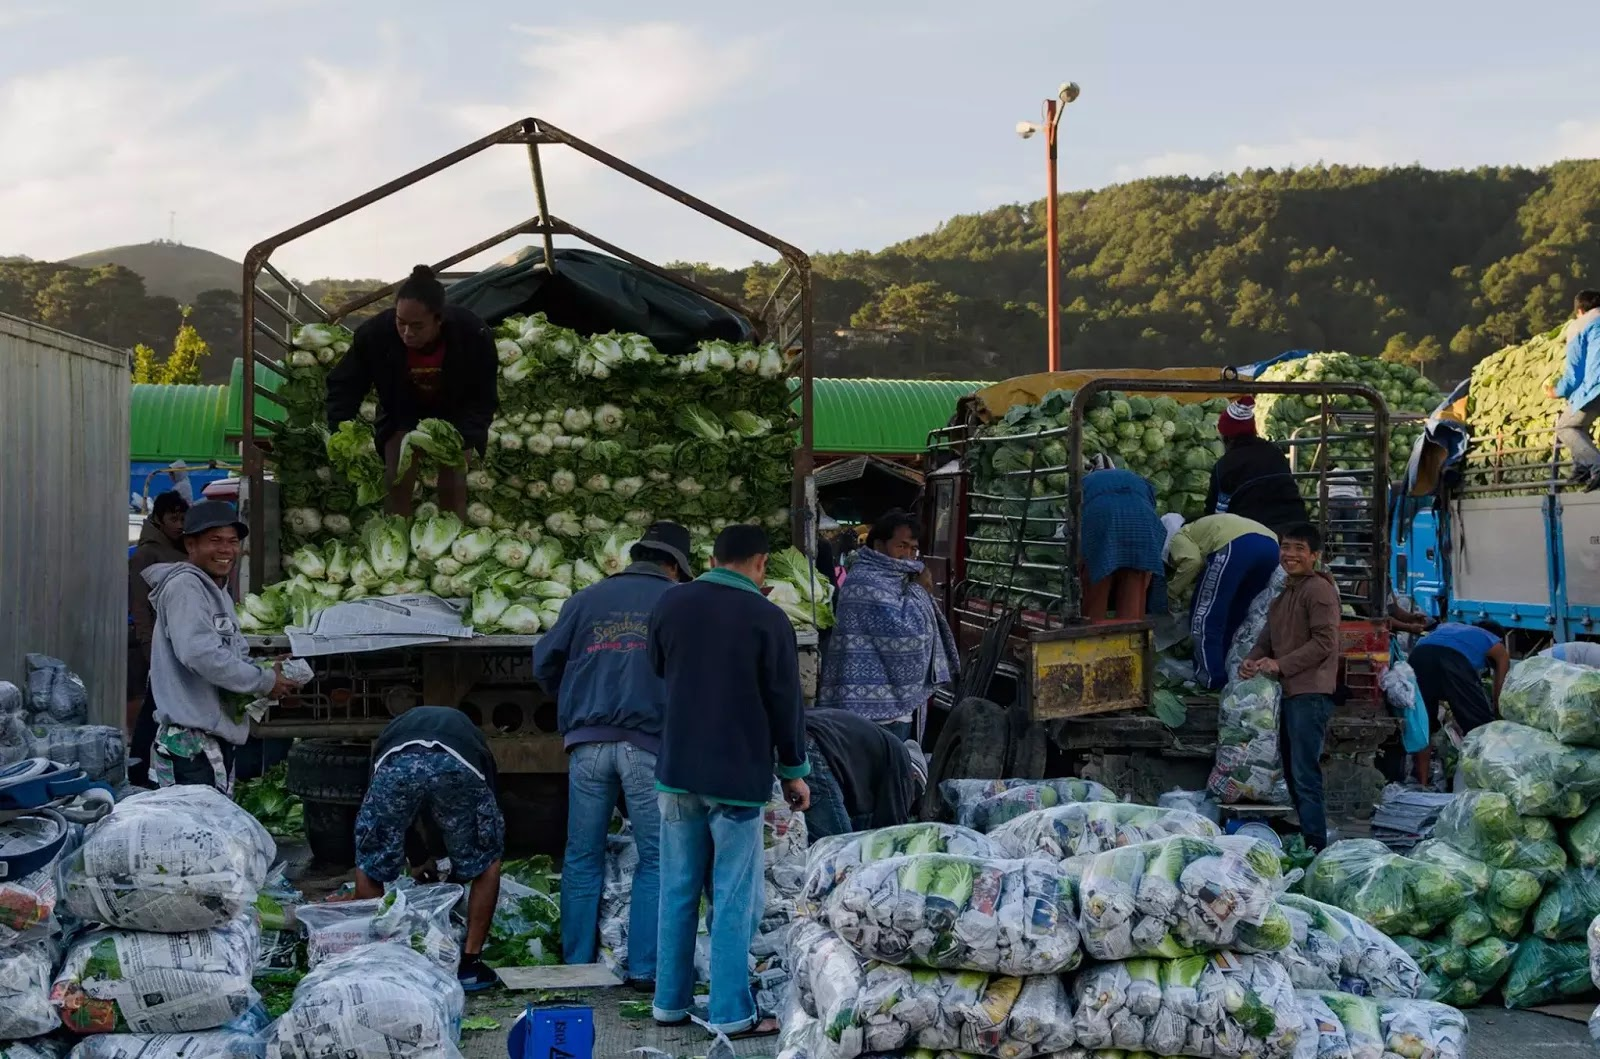 Vegetable Produce Workers Benguet Trading Post La Trinidad Benguet Cordillera Administrative Region Philippines